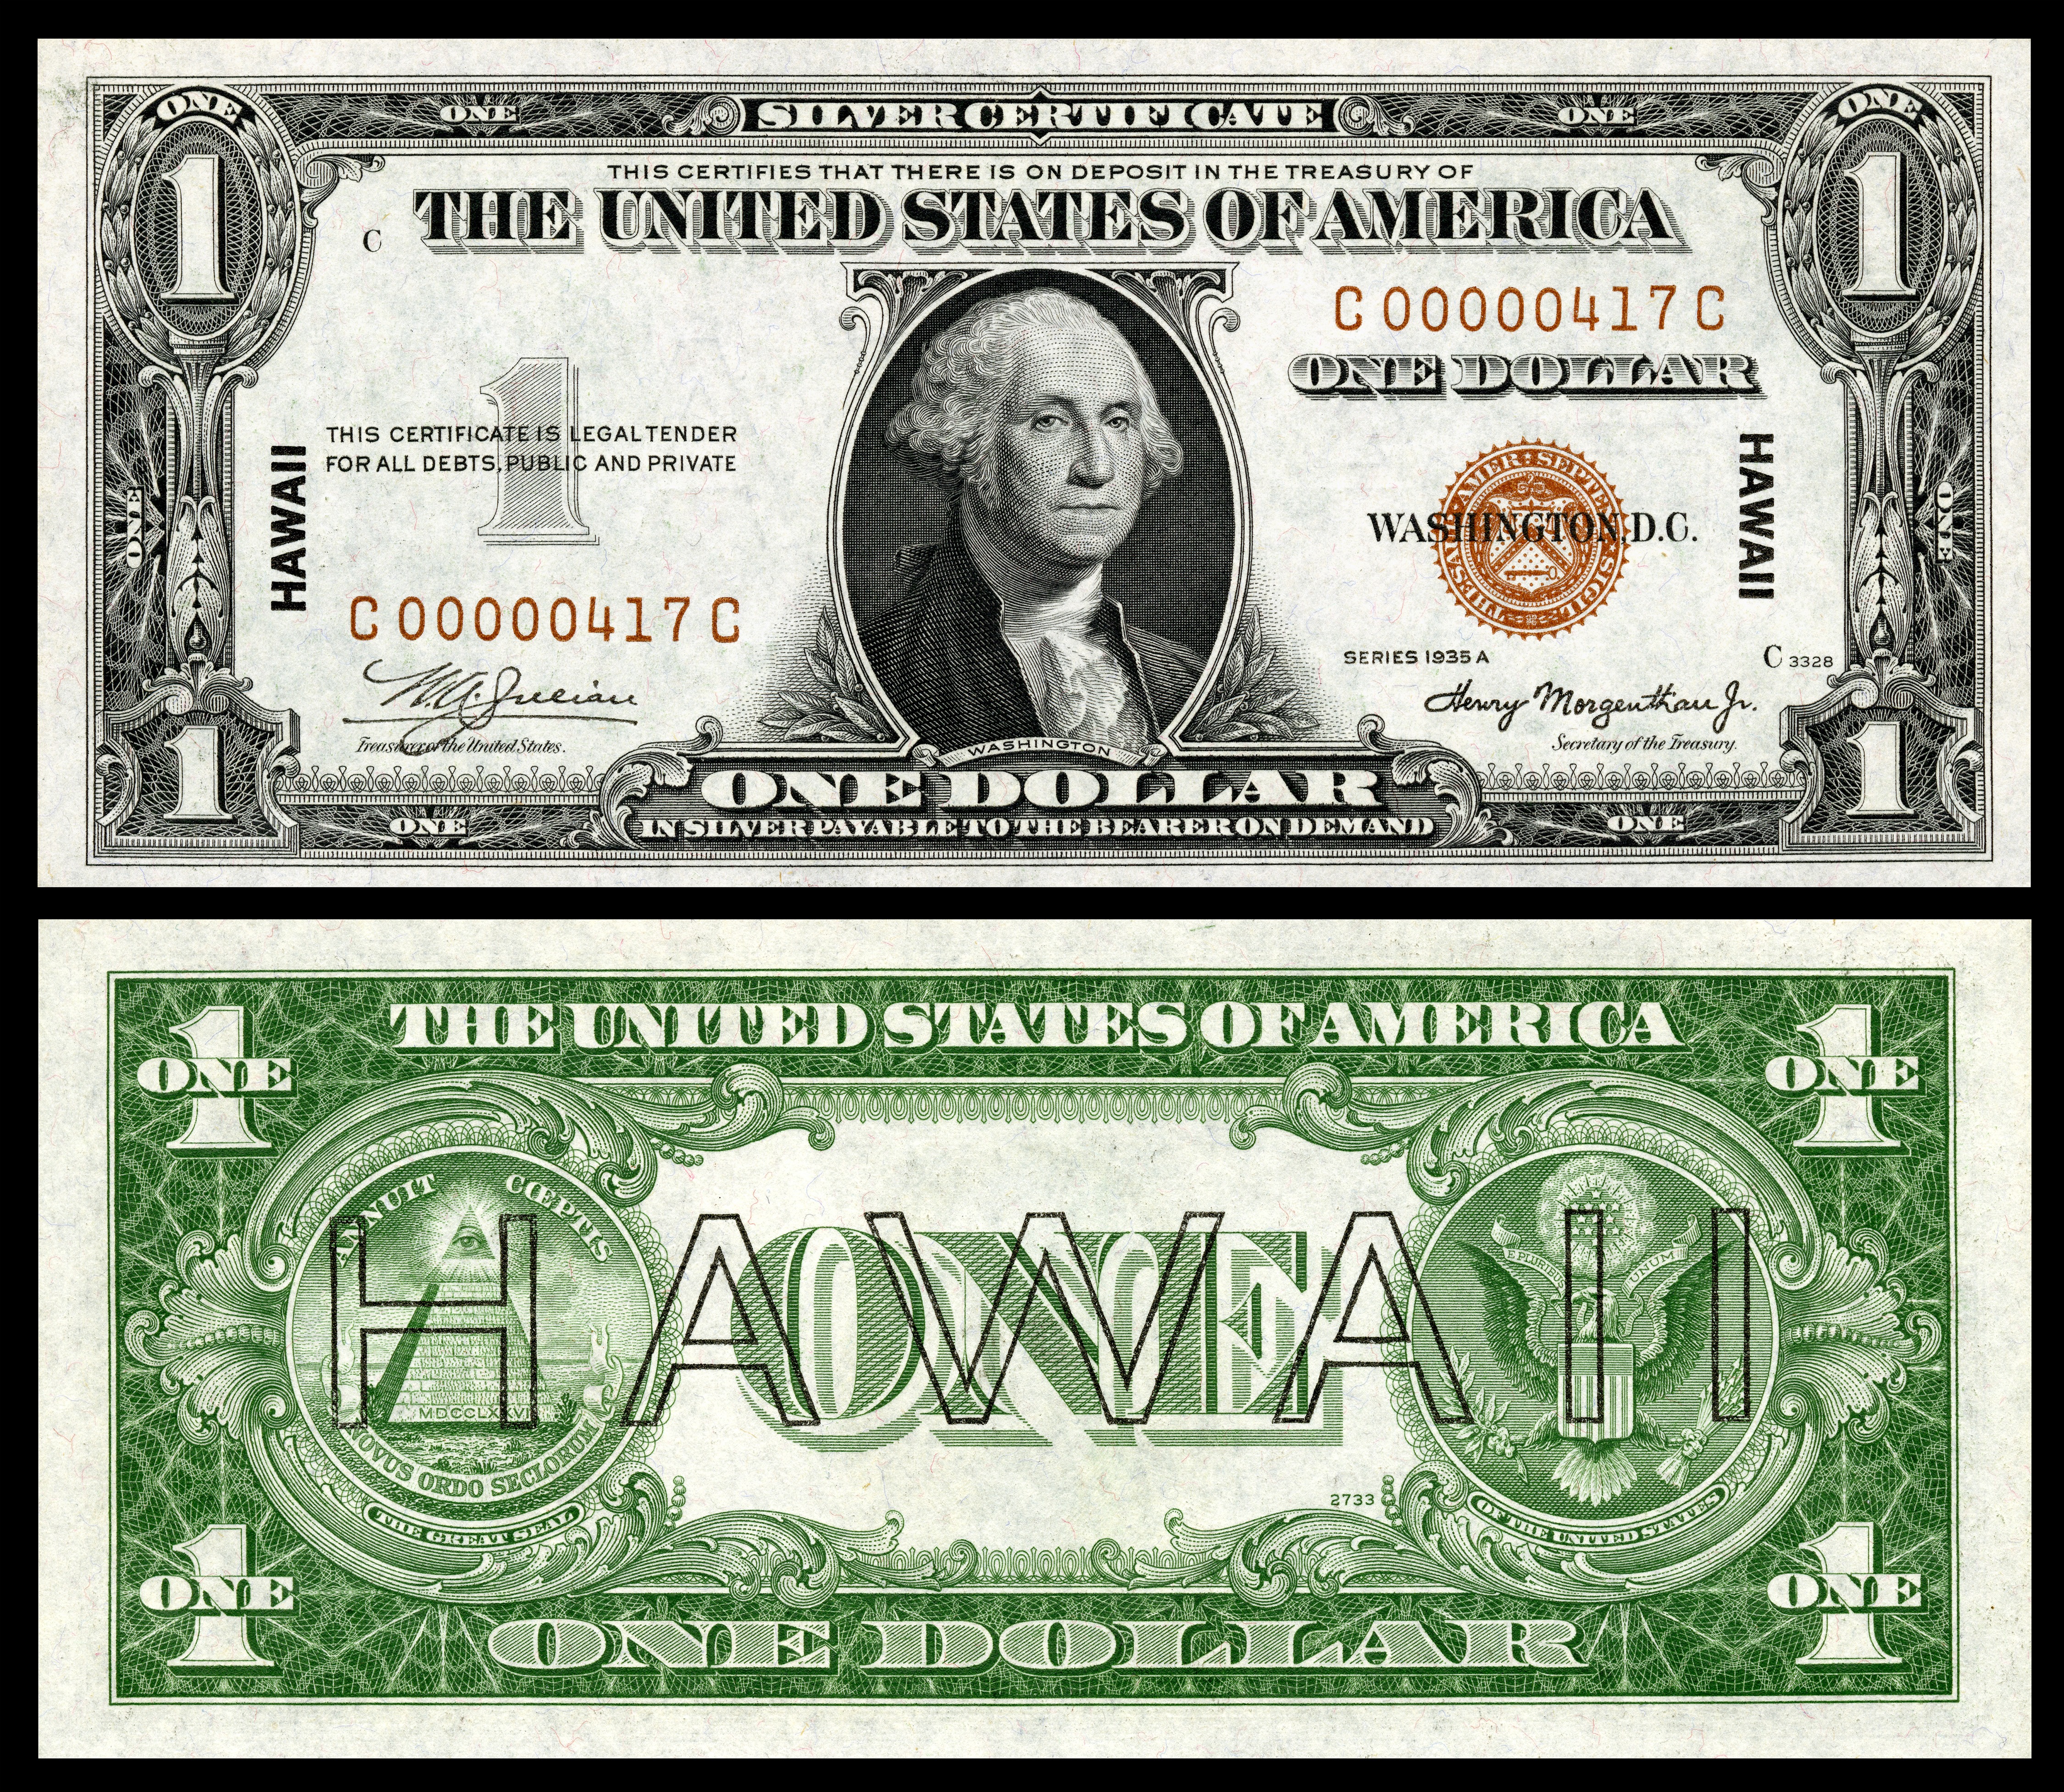 1 Silver Certificate Series 1935A Fr2300 Depicting George Washington